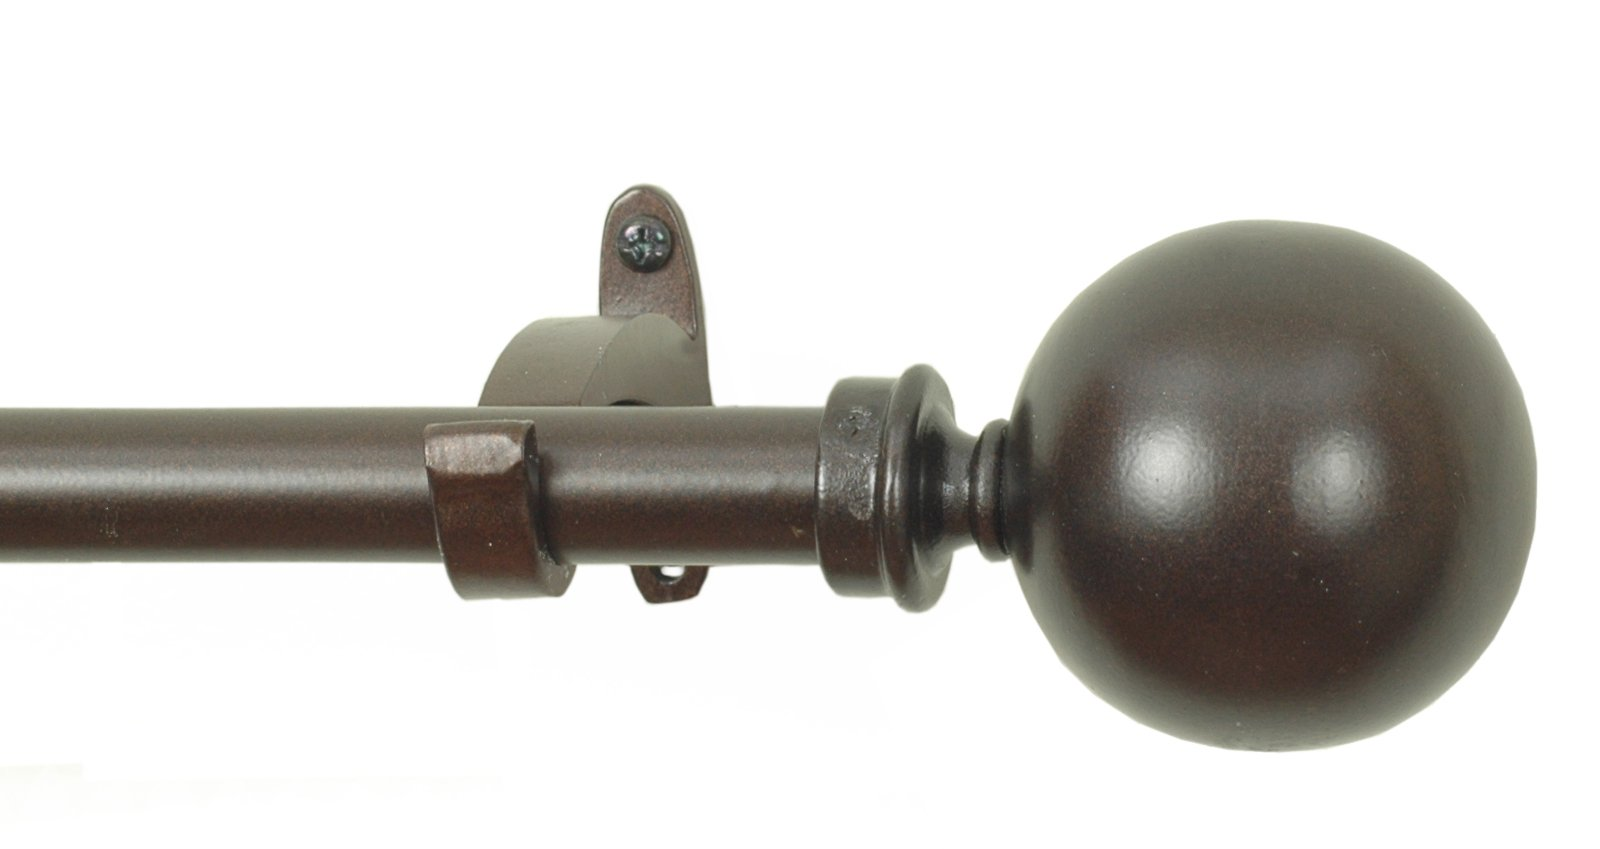 RULU 28055 28 to 48-Inch Oil Rubbed Ball Drapery Hardware with 3/4-Inch Pipe